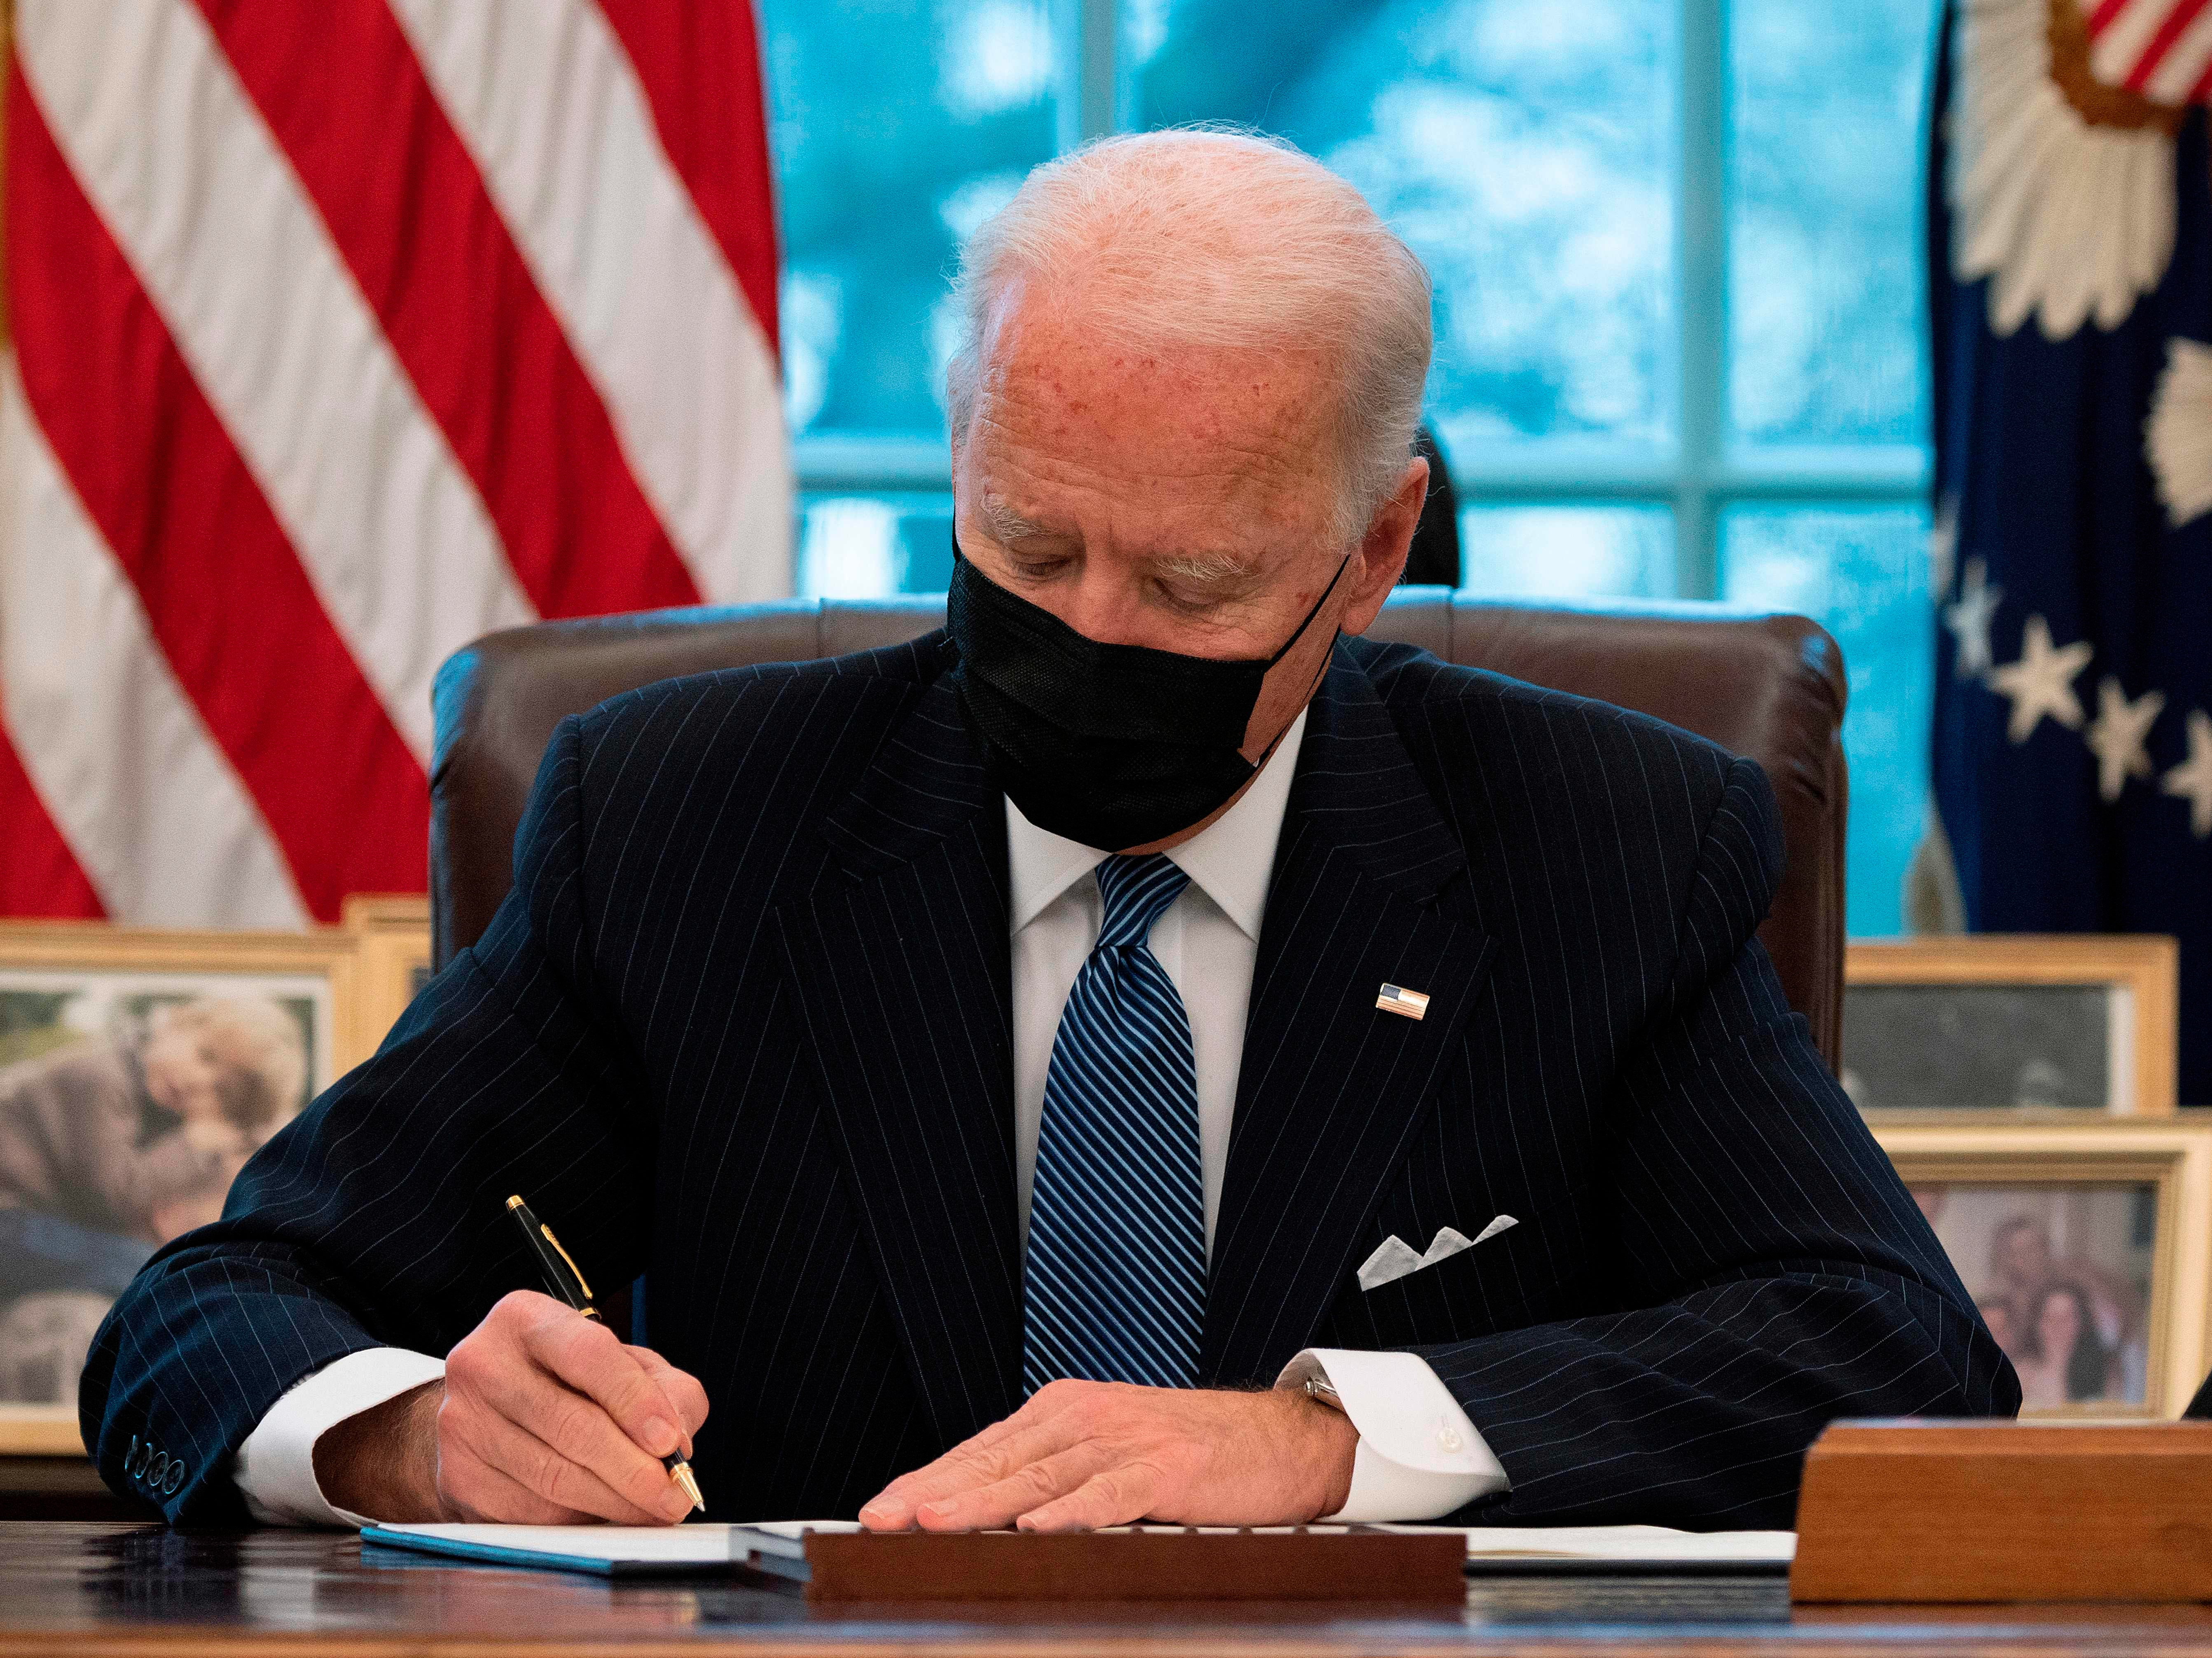 Biden extends Affordable Care Act eligibility in his latest executive orders to 'undo the damage Trump has done'